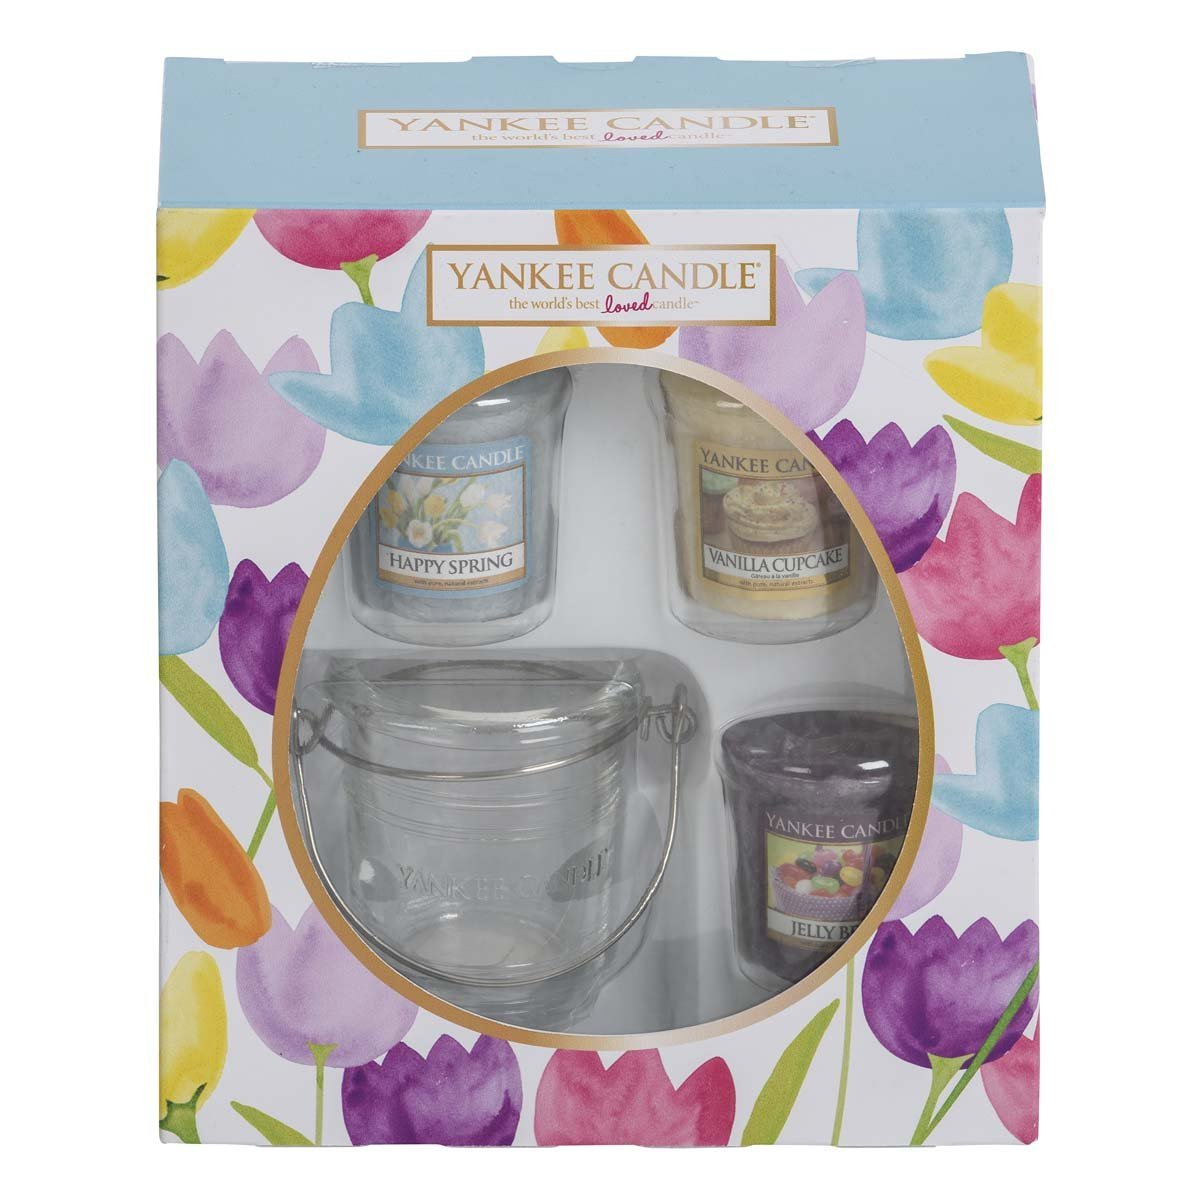 Six non edible easter gifts for kids aol one for older girls and grown ups this yankee candle easter giftset 898 comes with three different scented candles happy spring jelly bean and negle Choice Image